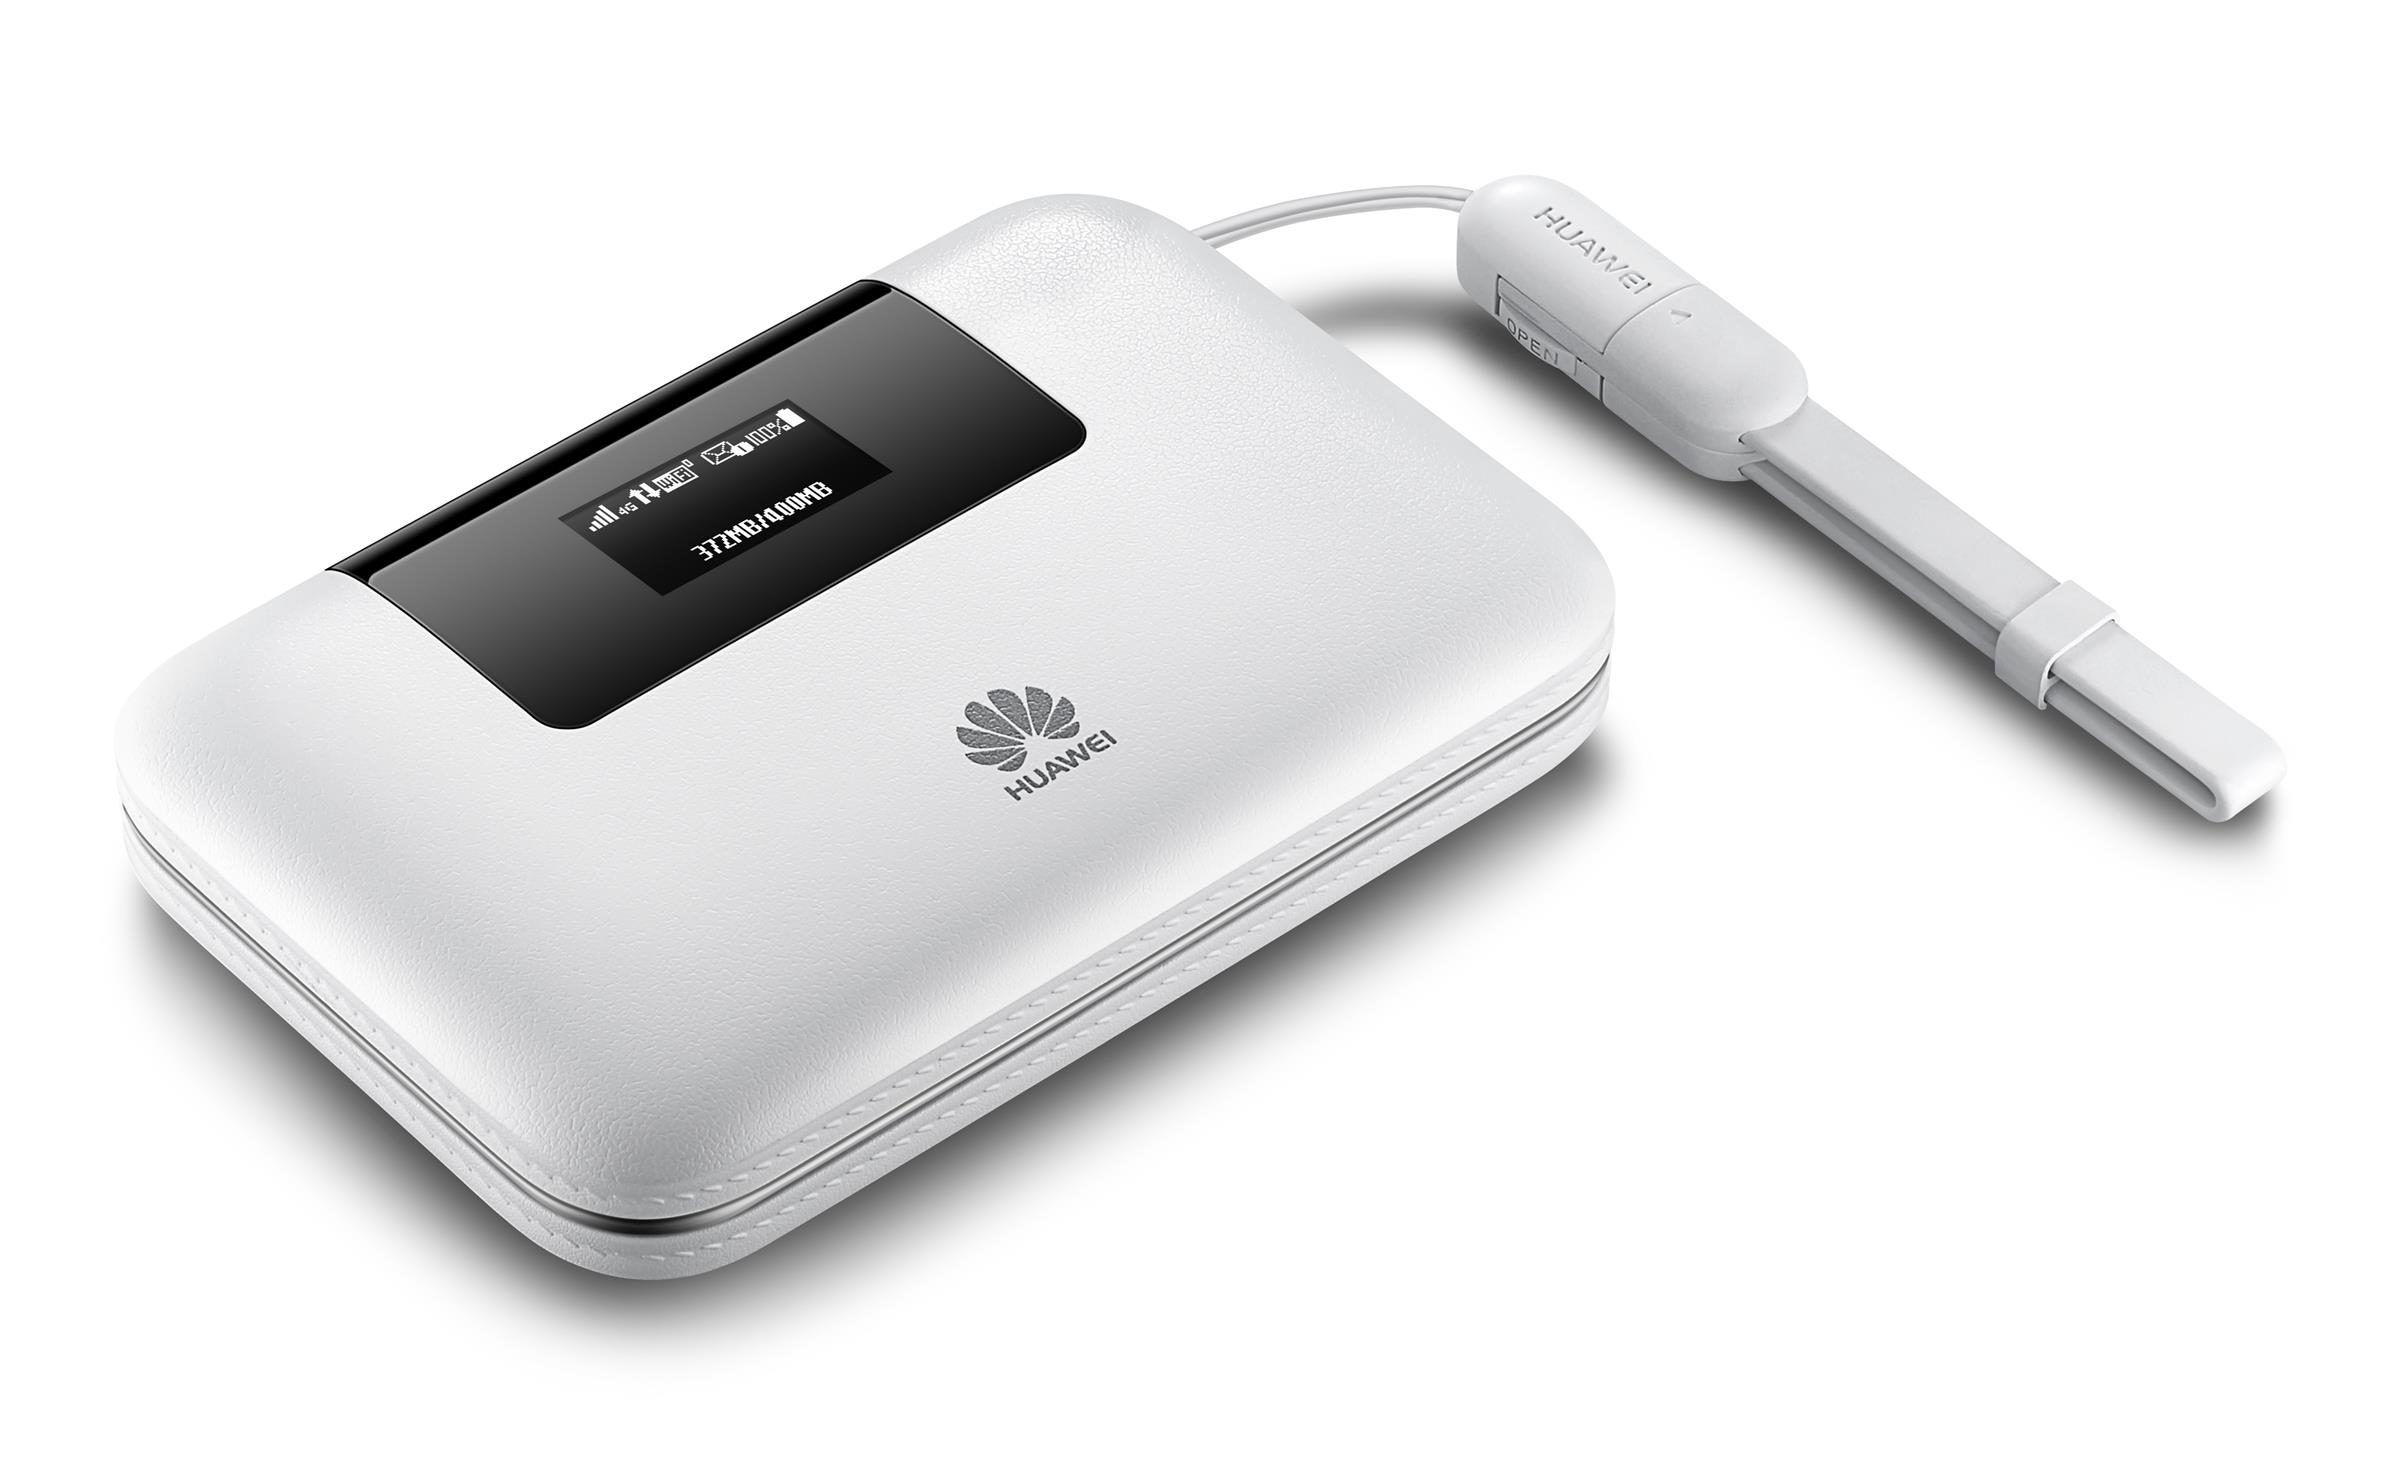 how to connect huawei modem